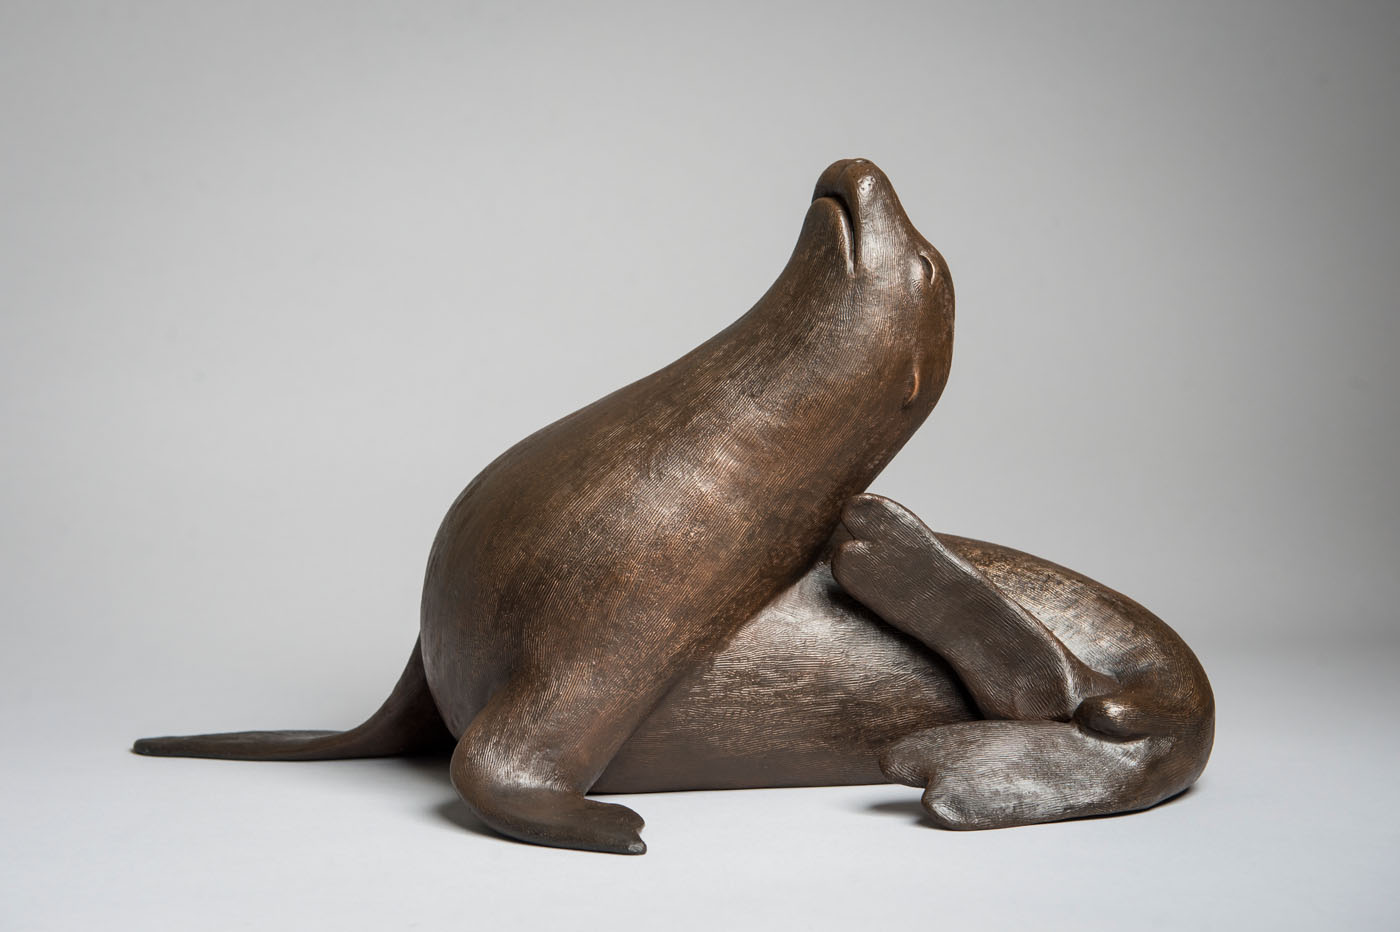 Bronze sculpture of a Sea Lion by artist Anthony Smith